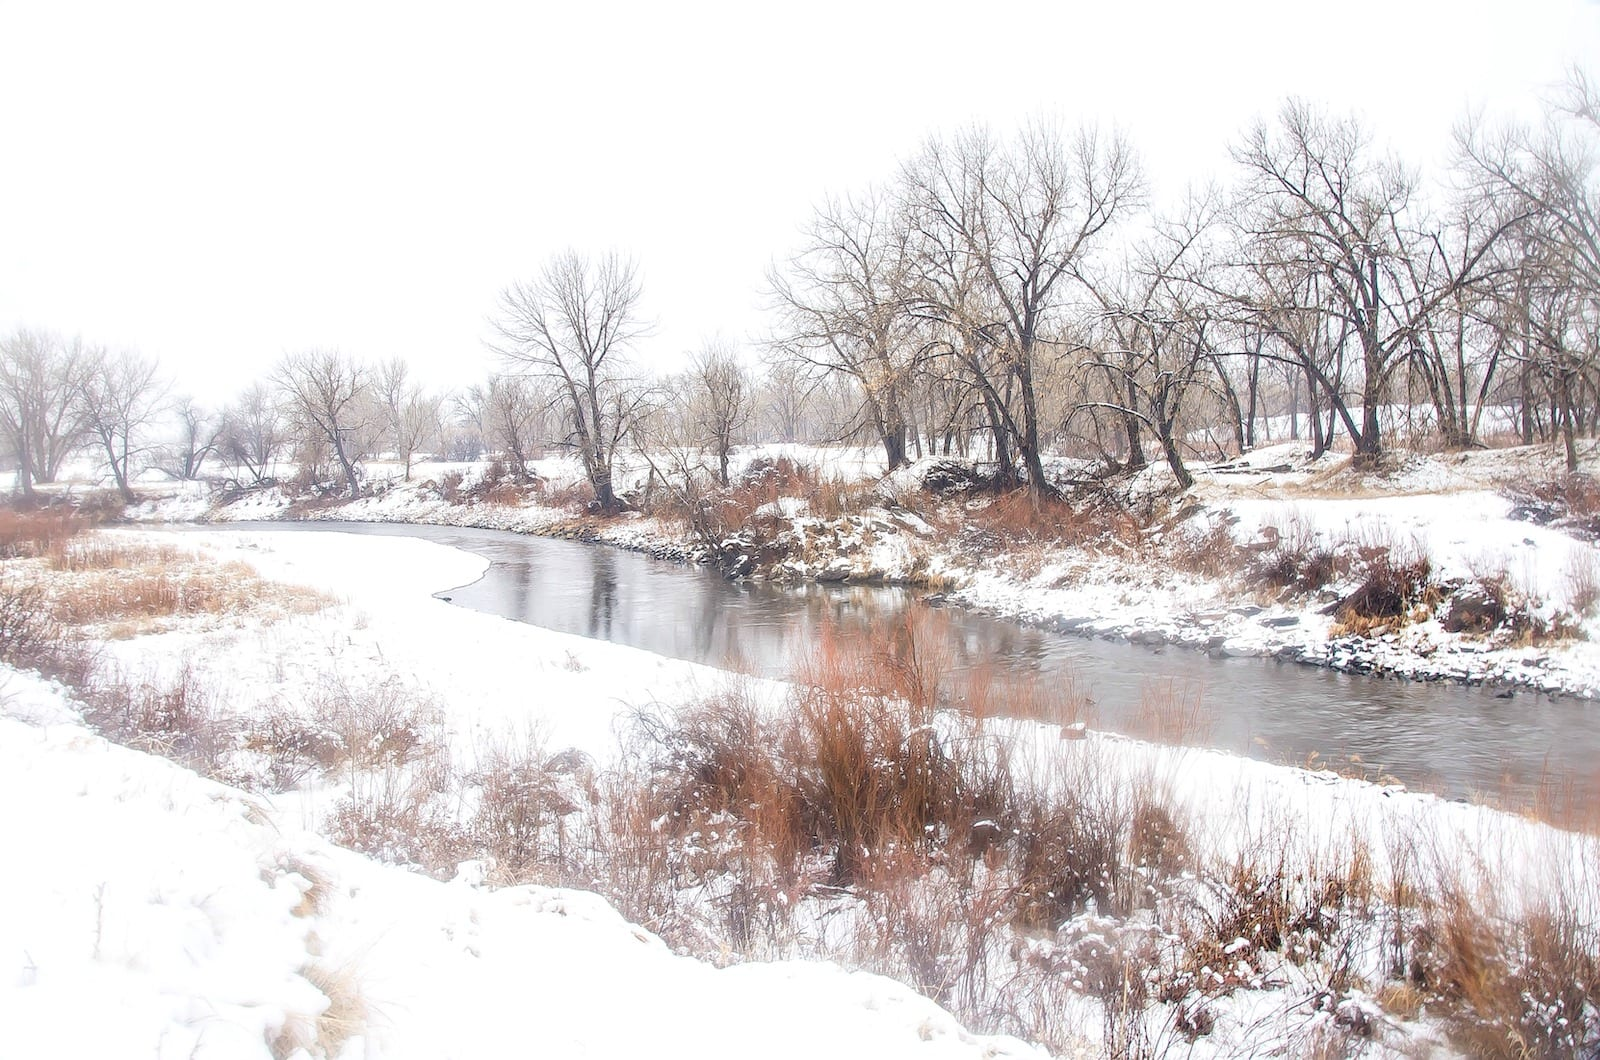 Winter at South Platte River, Co